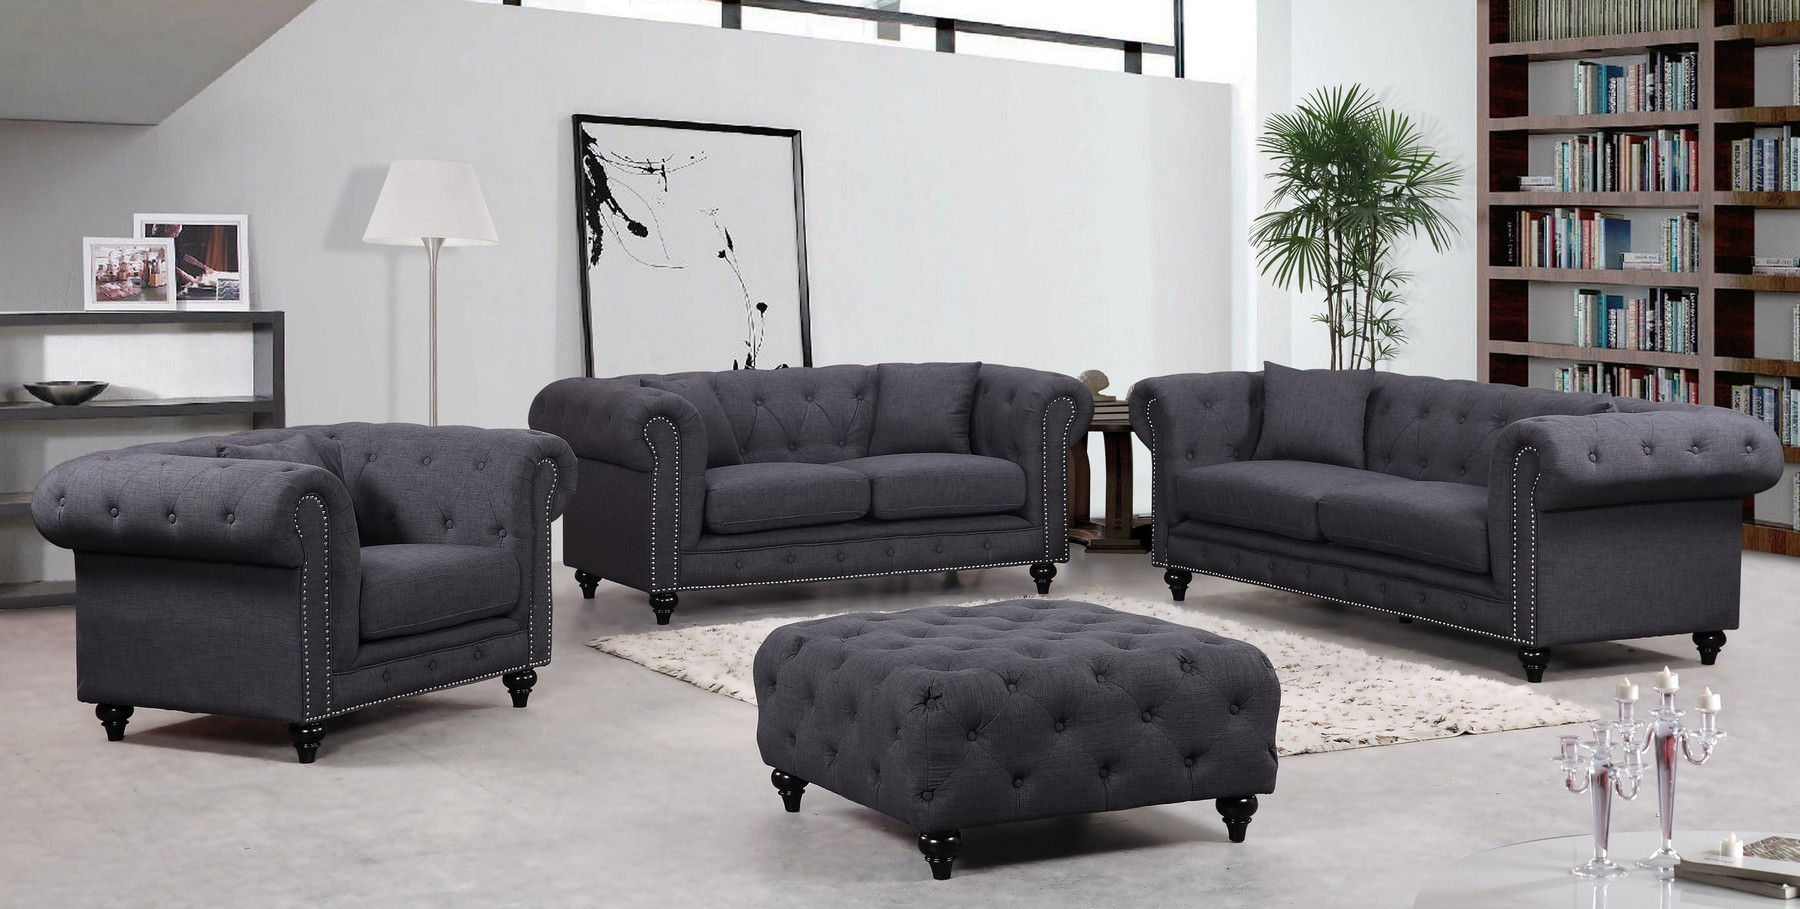 Chesterfield Gray Sofa + Love + Chair + Ottoman